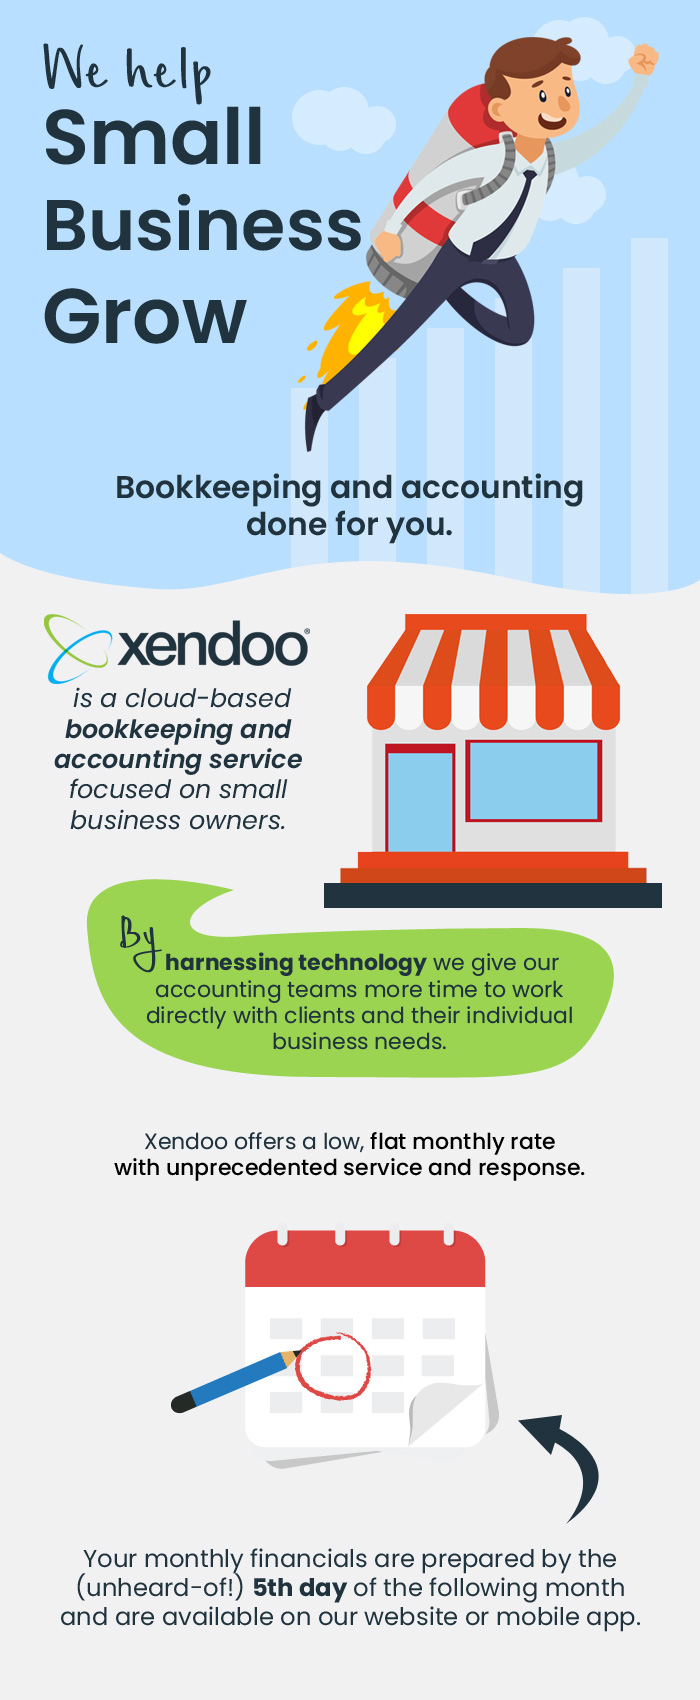 Xendoo – An Online Accounting & Bookkeeping Service Provider